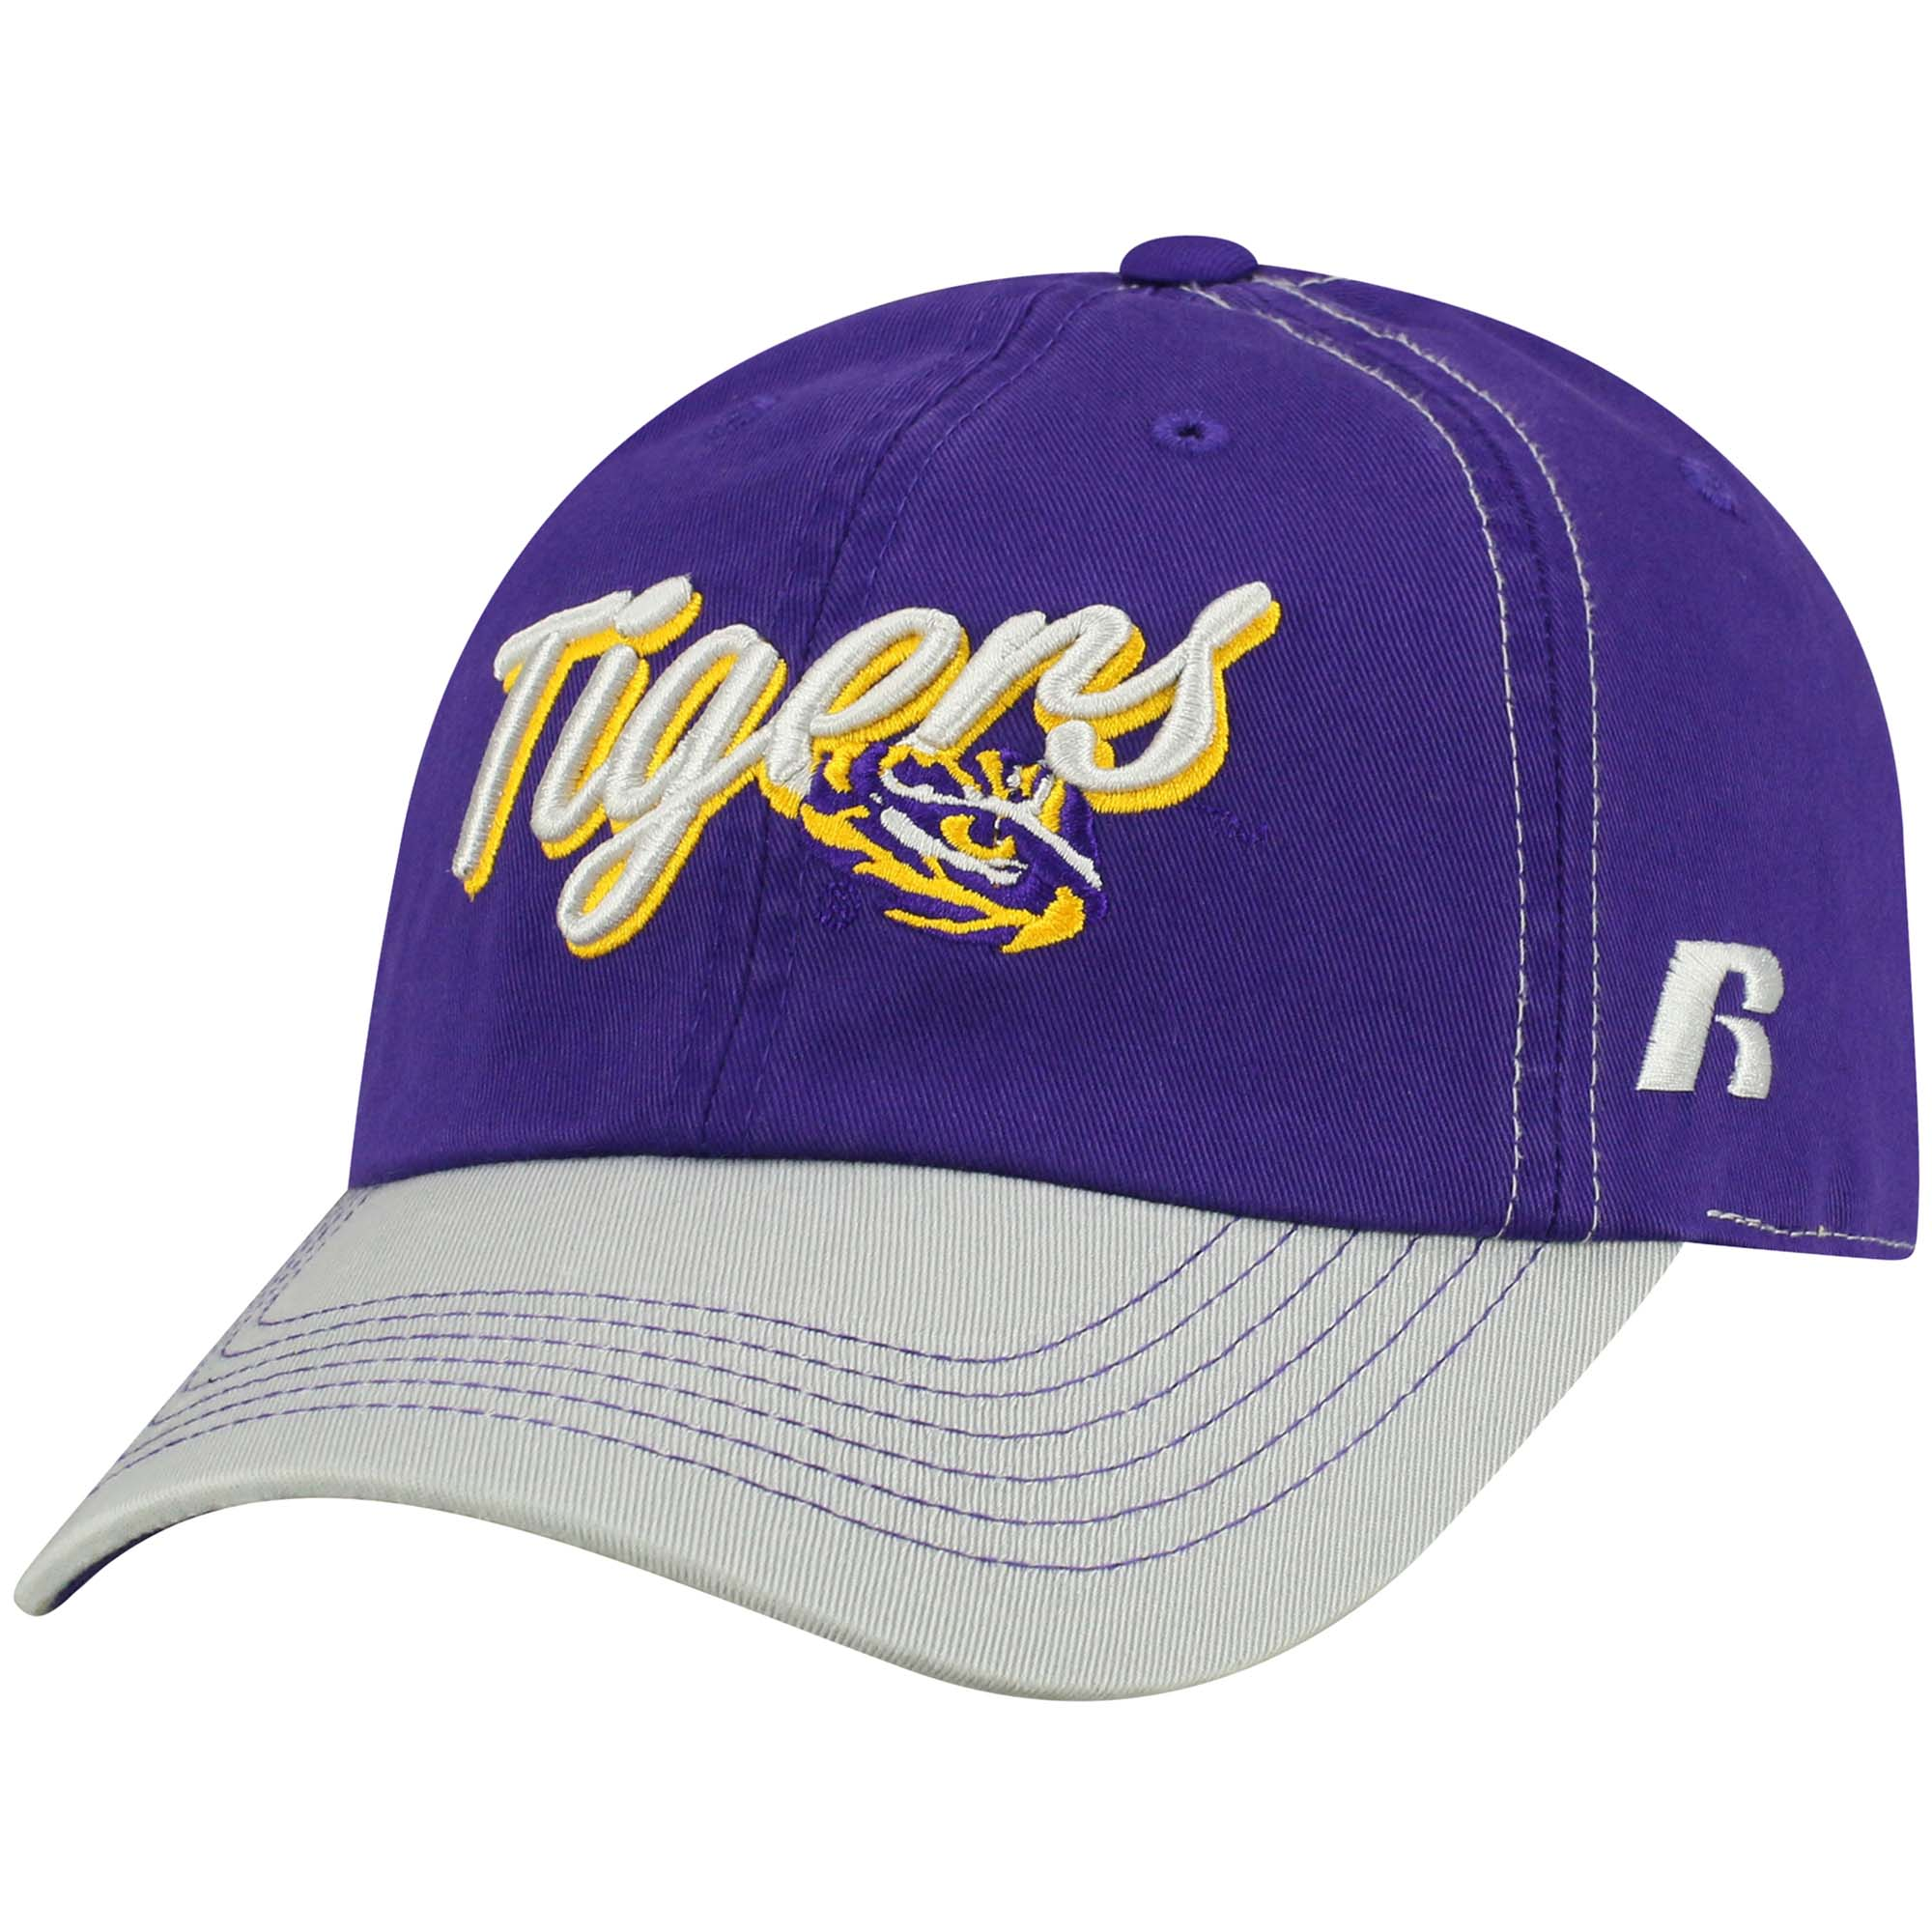 cccc3be58b03d ... new zealand womens russell purple lsu tigers sojourn adjustable hat  osfa 8d1bf 44865